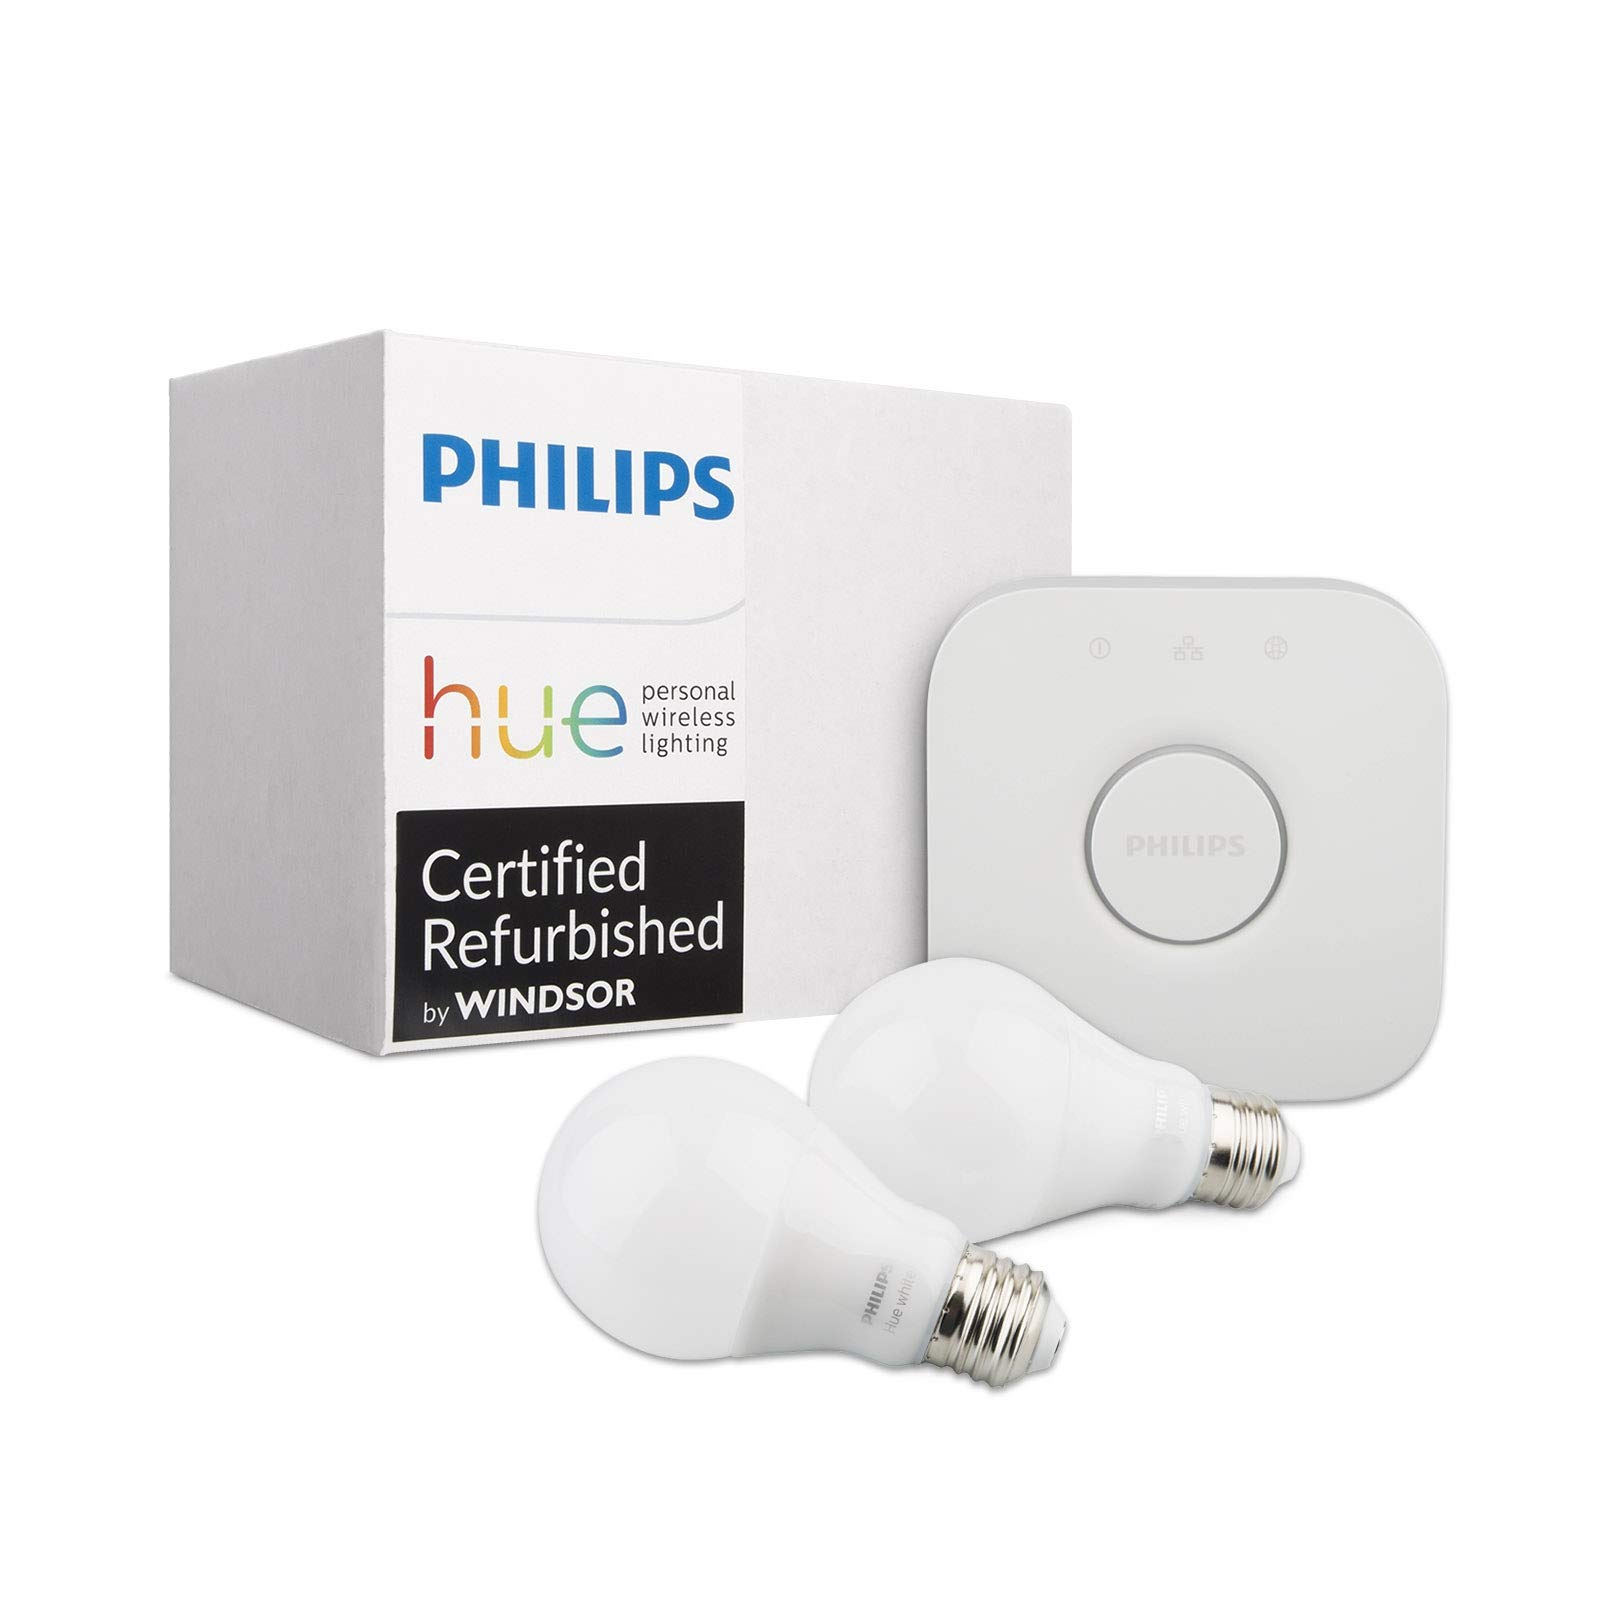 Philips Hue White Ambiance Smart Bulb Kit (Compatible with Alexa Apple HomeKit and Google Assistant) (Renewed) (Two Bulbs + Bridge)